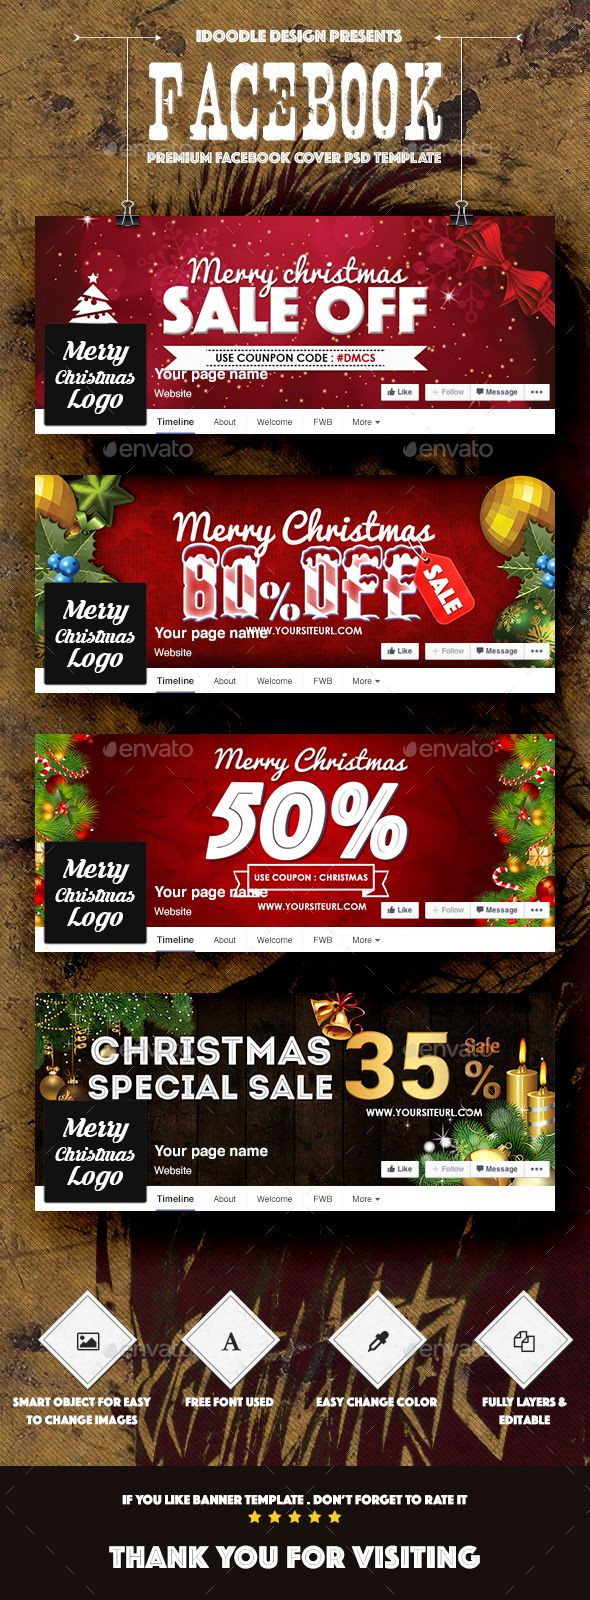 Christmas Facebook Covers Template PSD #design Download: http://graphicriver.net/item/christmas-facebook-covers/14111959?ref=ksioks